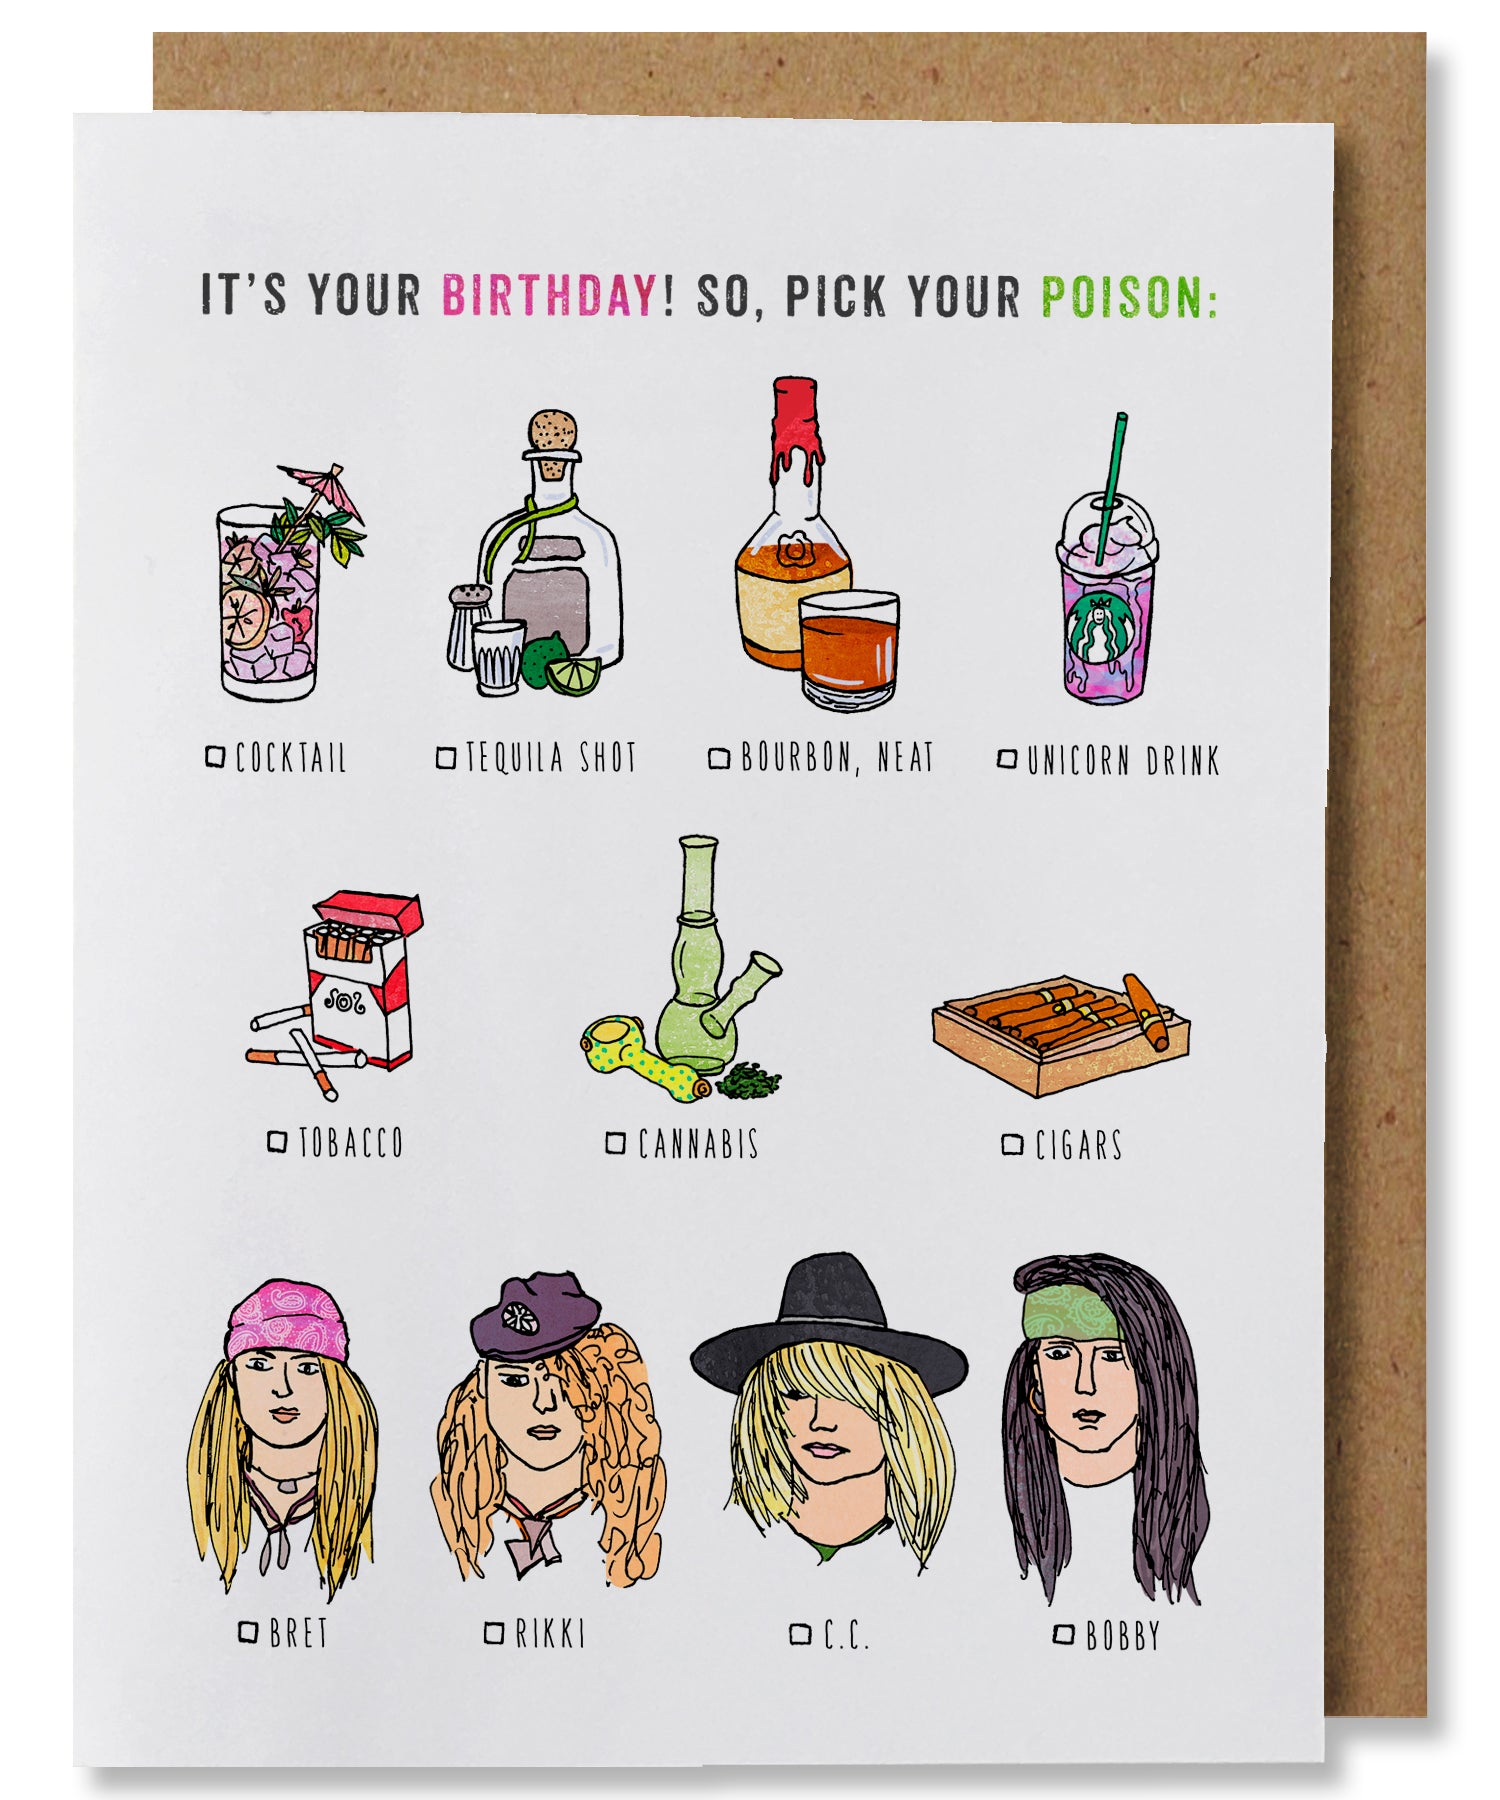 Pick Your Poison Birthday Card - Heart of the Home PA